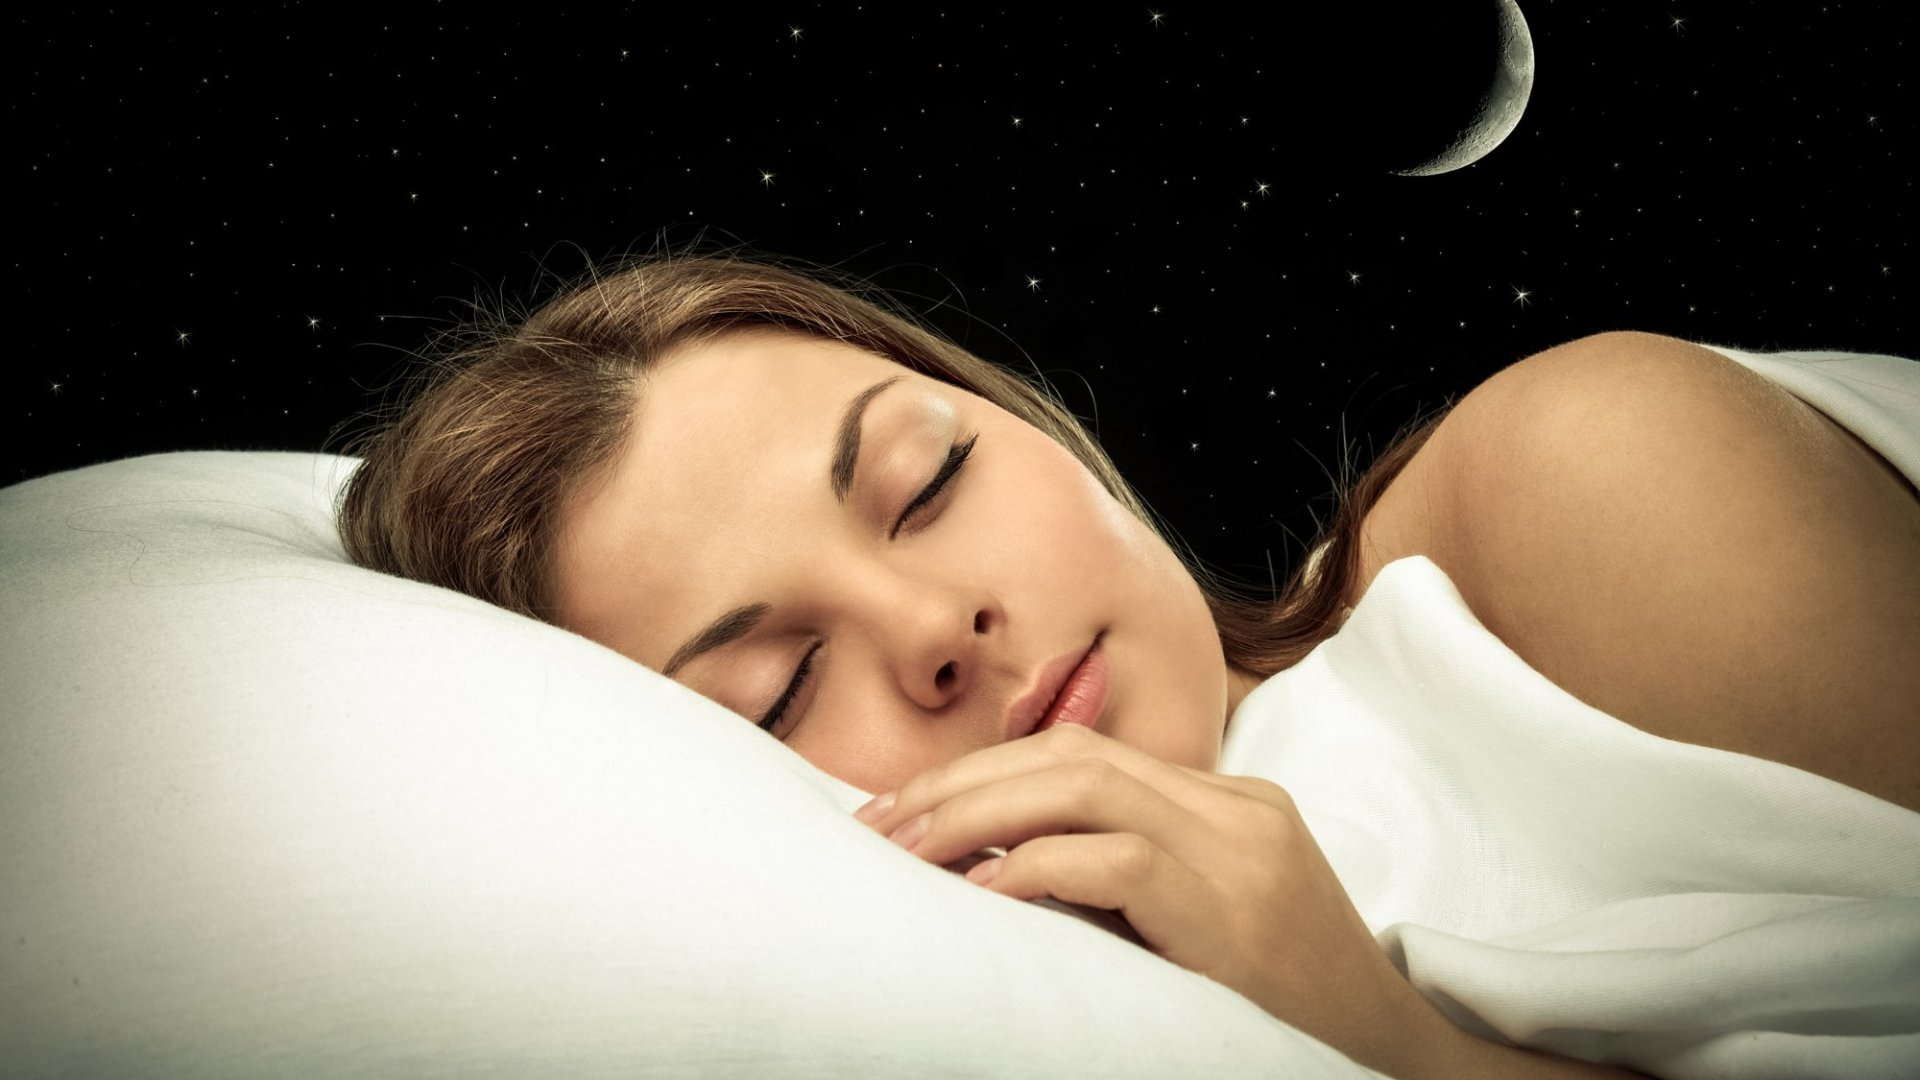 Brain Science Suggests This Is the Best Position to Sleep In